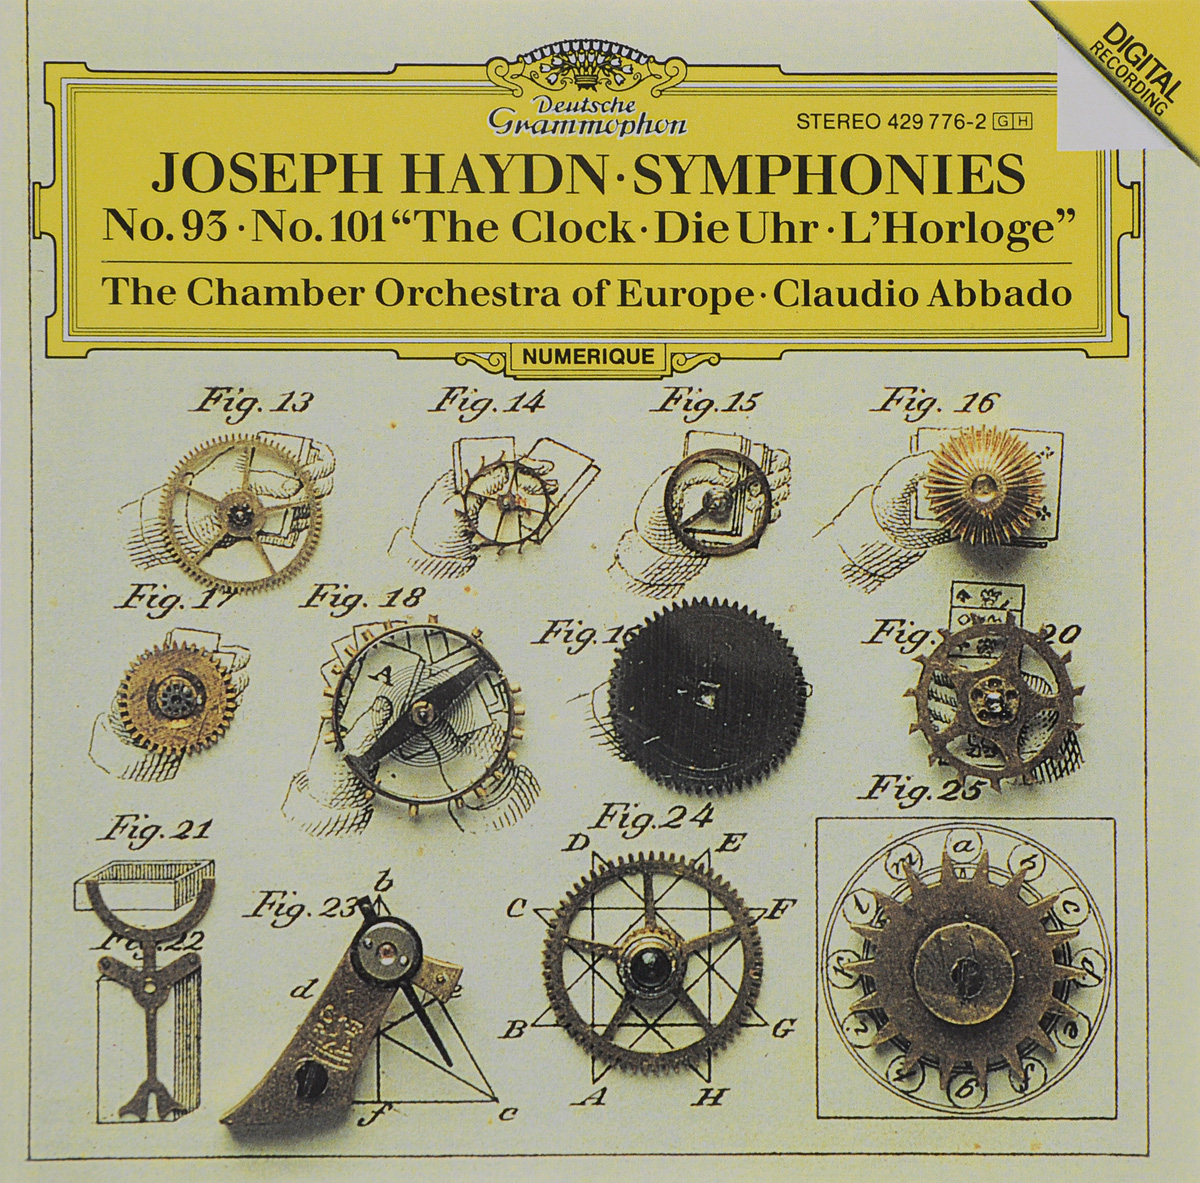 Клаудио Аббадо,The Chamber Orchestra Of Europe Claudio Abbado. Haydn. Symphonies No. 93 / No. 101 The Clock cbn e314l gear pump the left rotation splined shaft long shaft with no flange no end oil outlet